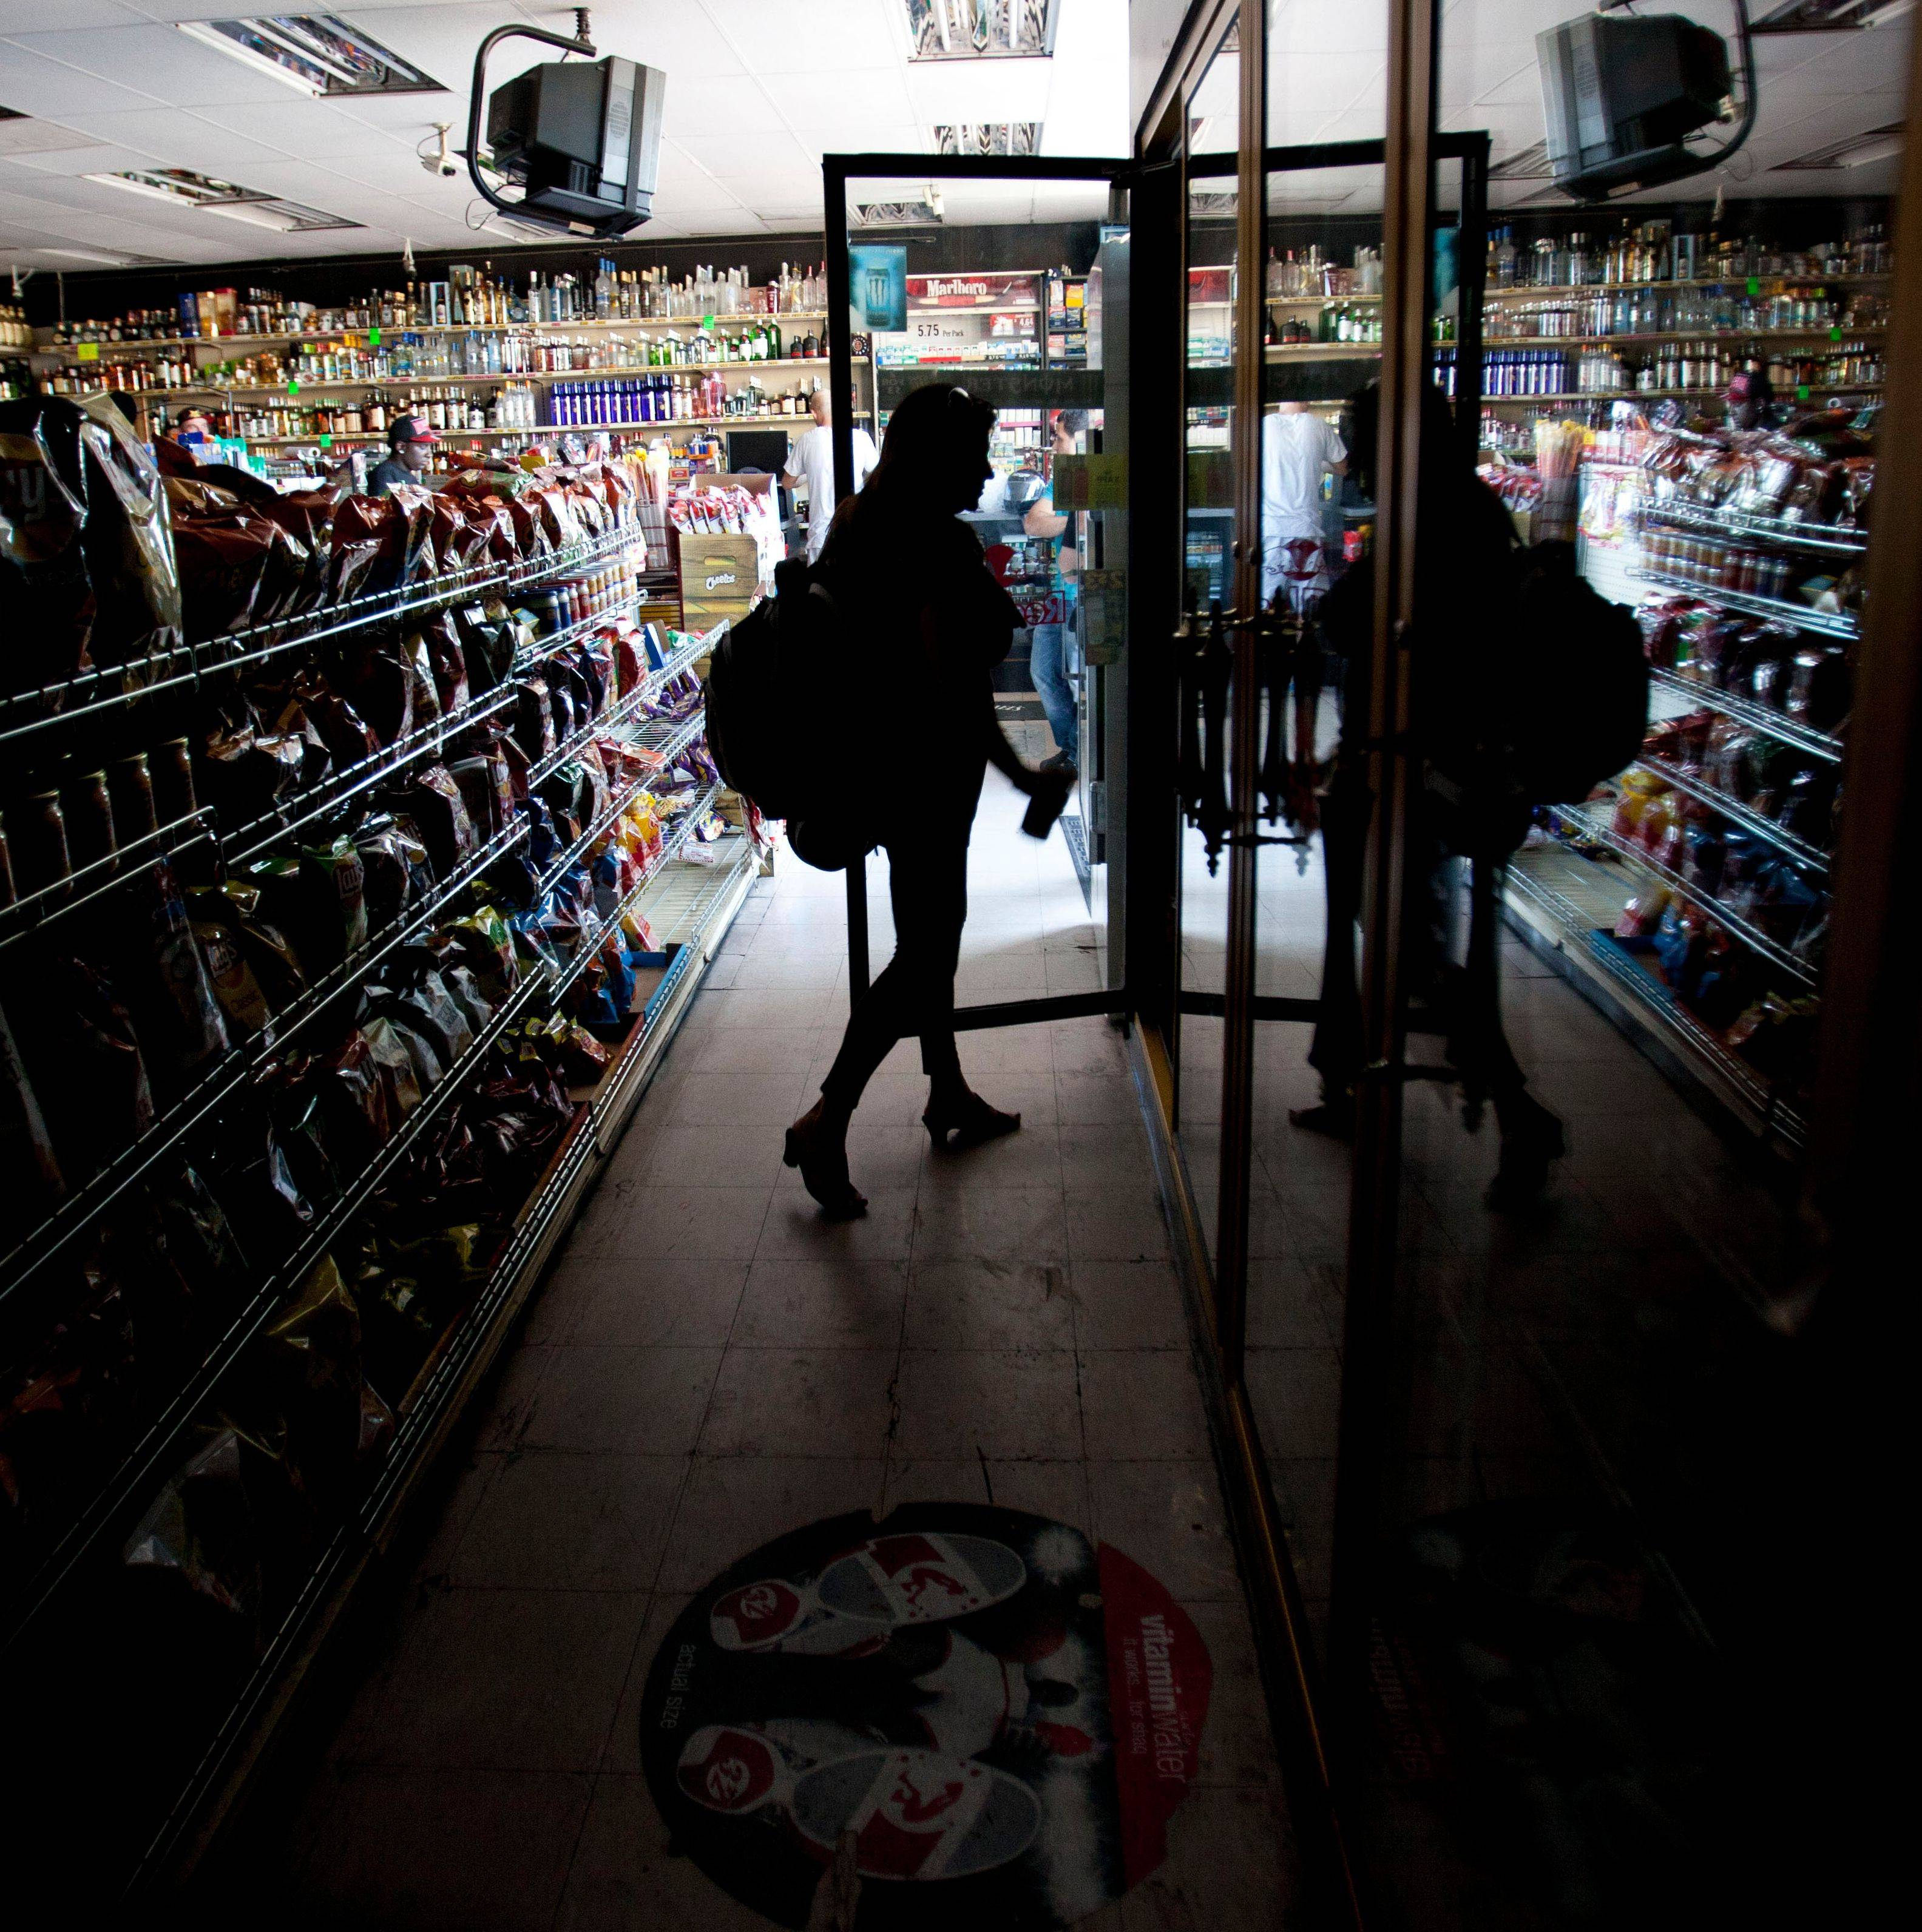 Customers shop in a convenience store after a power outage Thursday in San Diego that affected California, Arizona and Mexico.